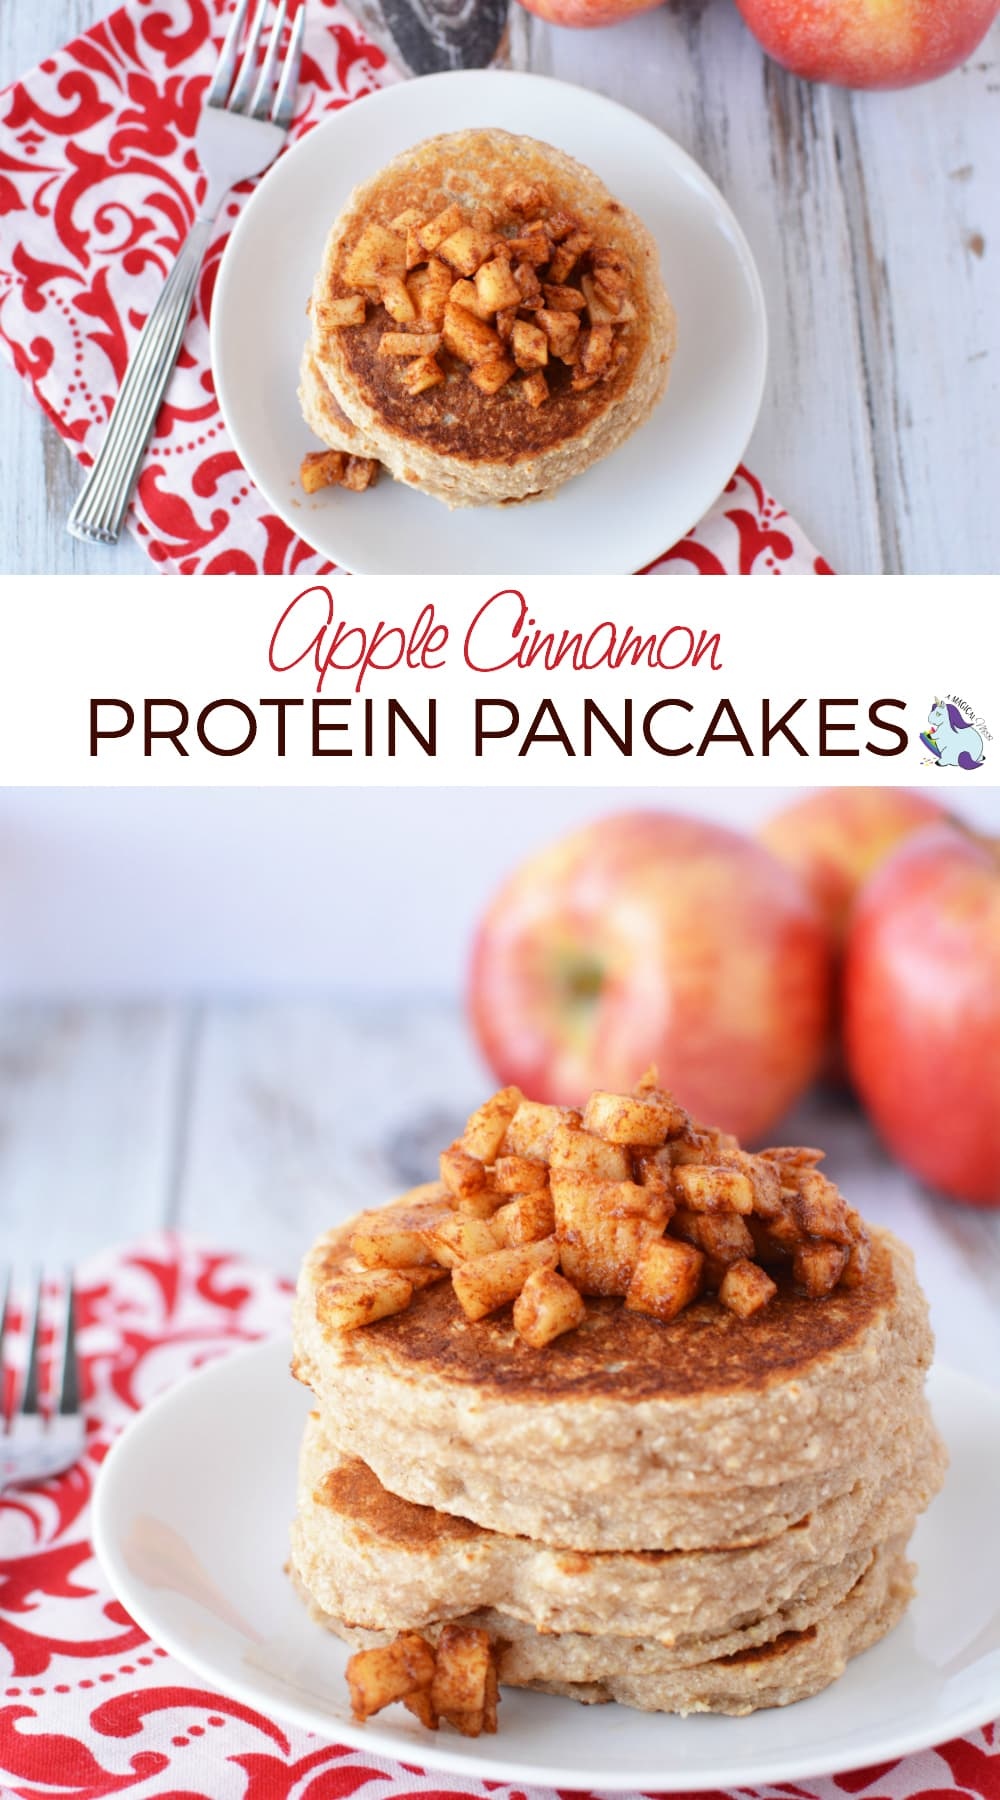 Bodybuilding Breakfast - Luscious Apple Cinnamon Protein Pancakes #protein #pancakes #breakfast #proteinpancakes #apple #cinnamon